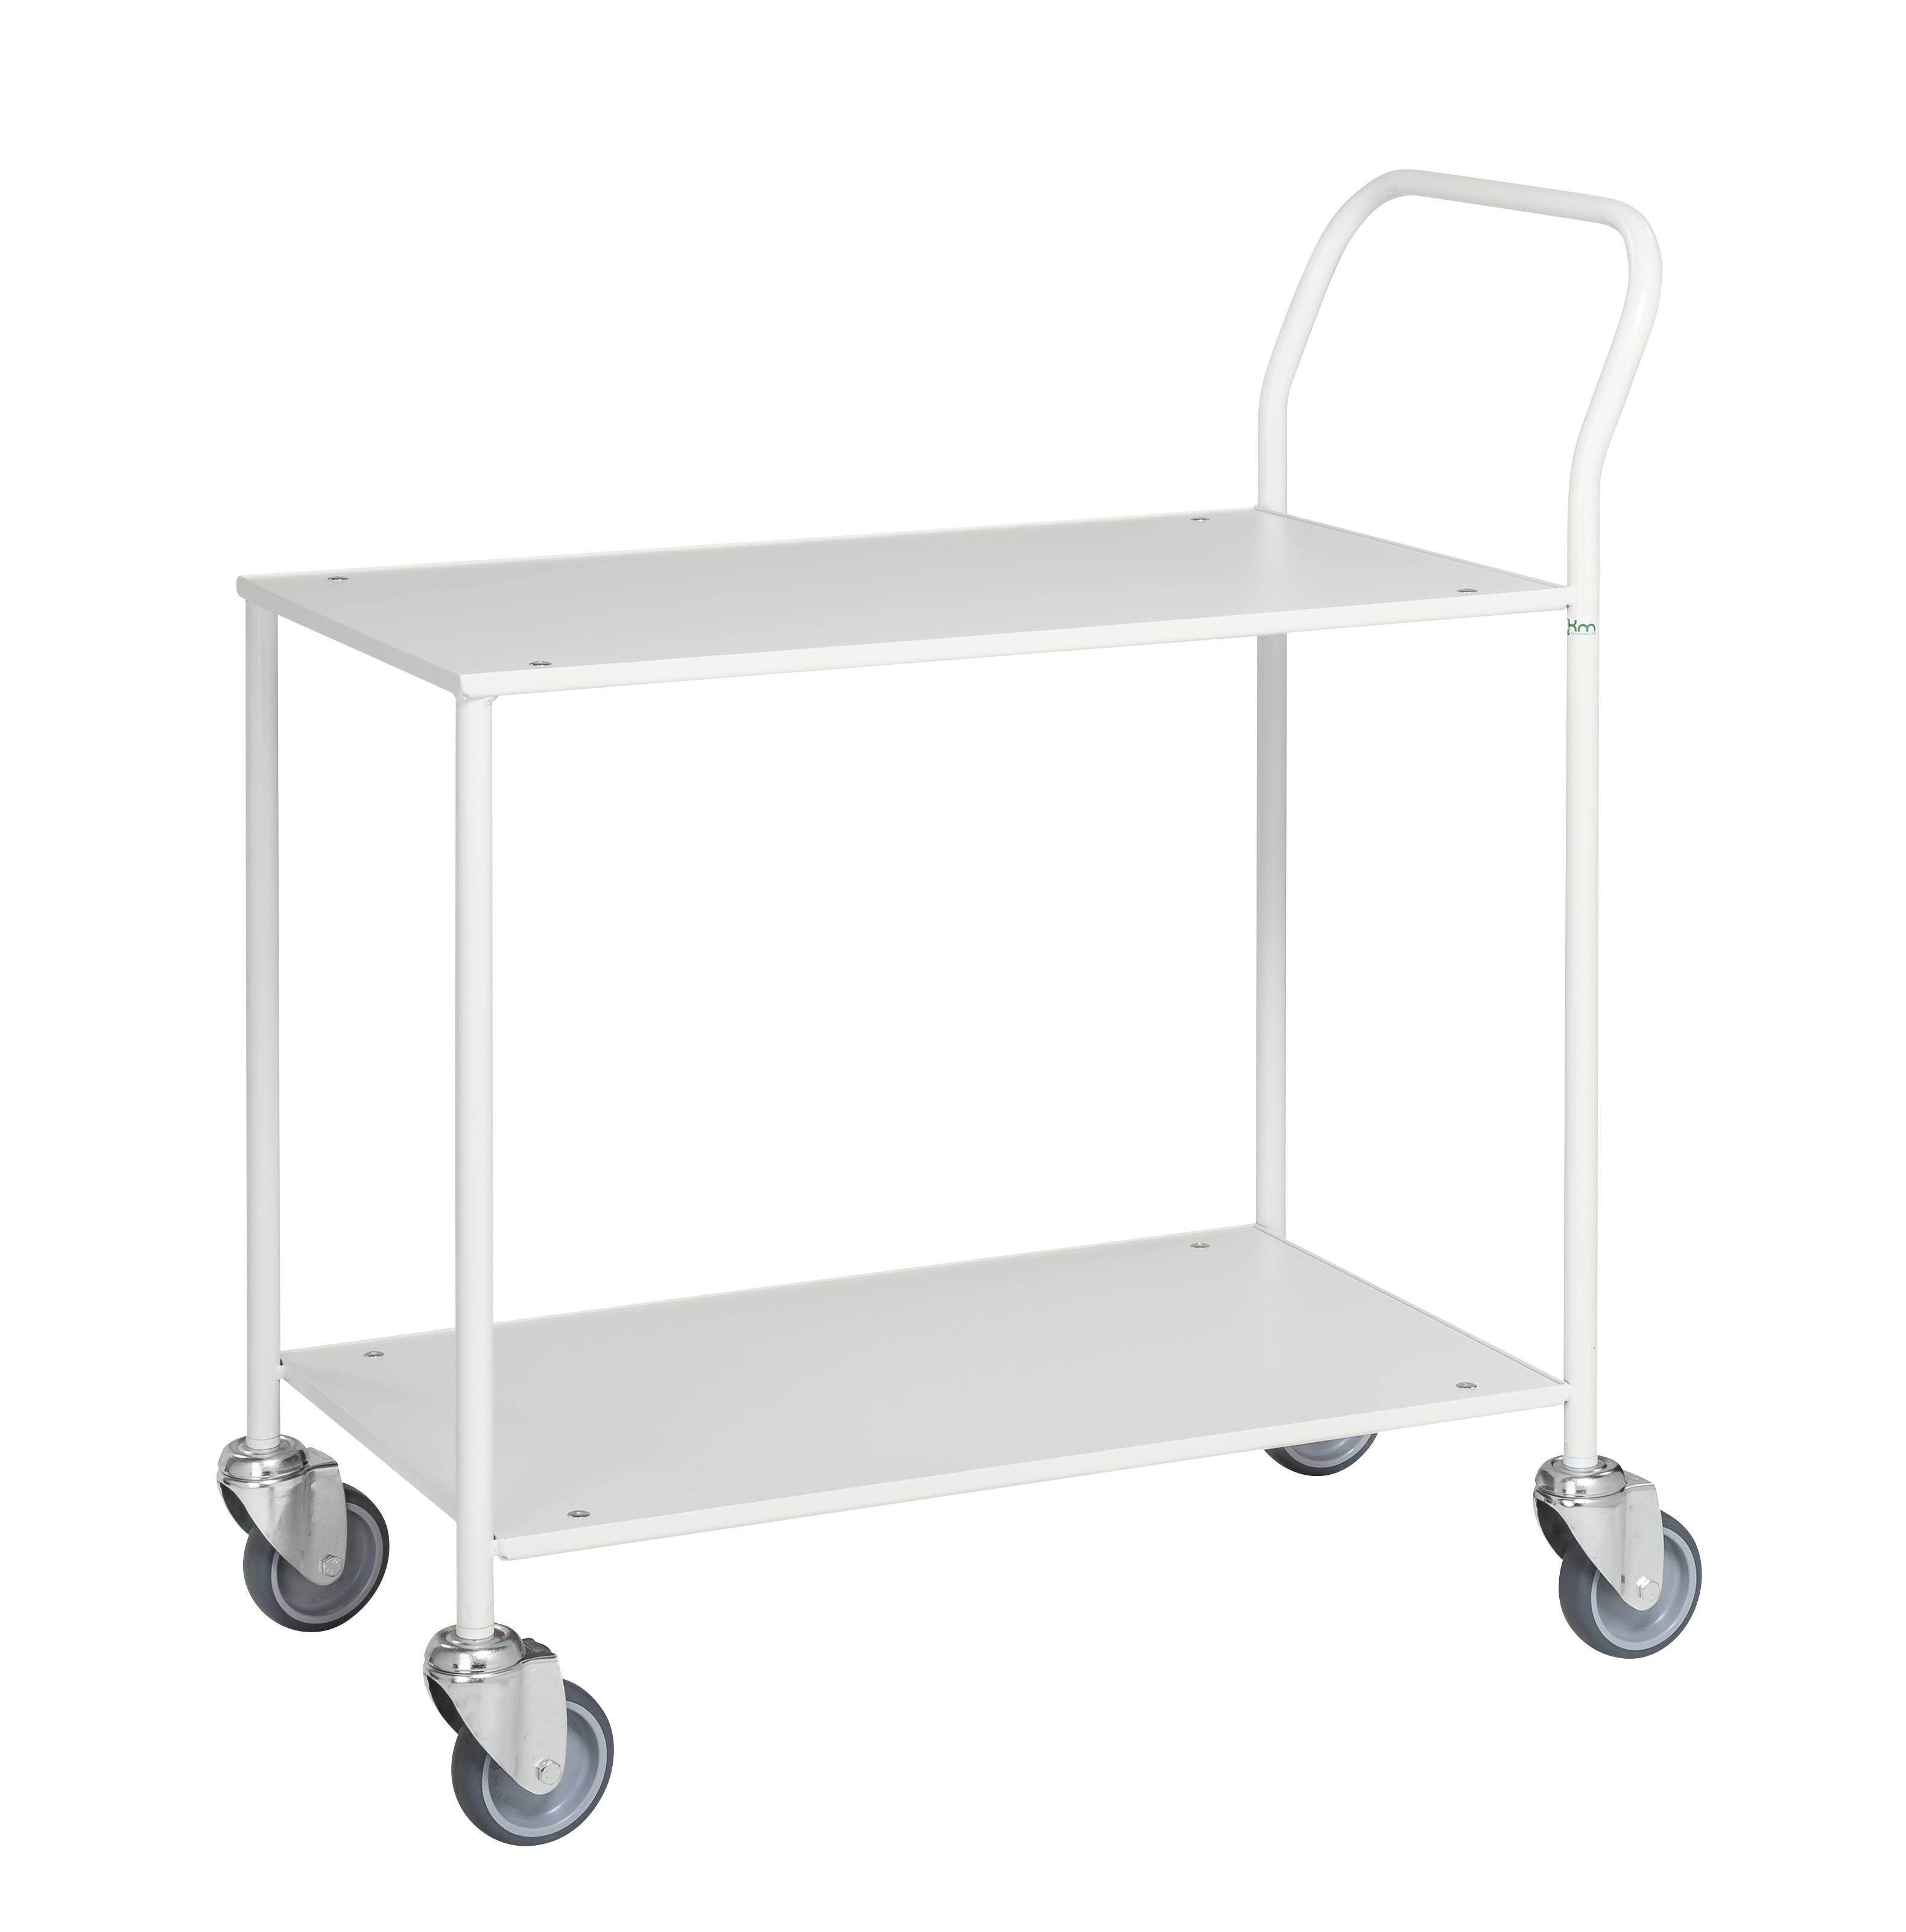 Small table trolley, fully welded KM173-6B